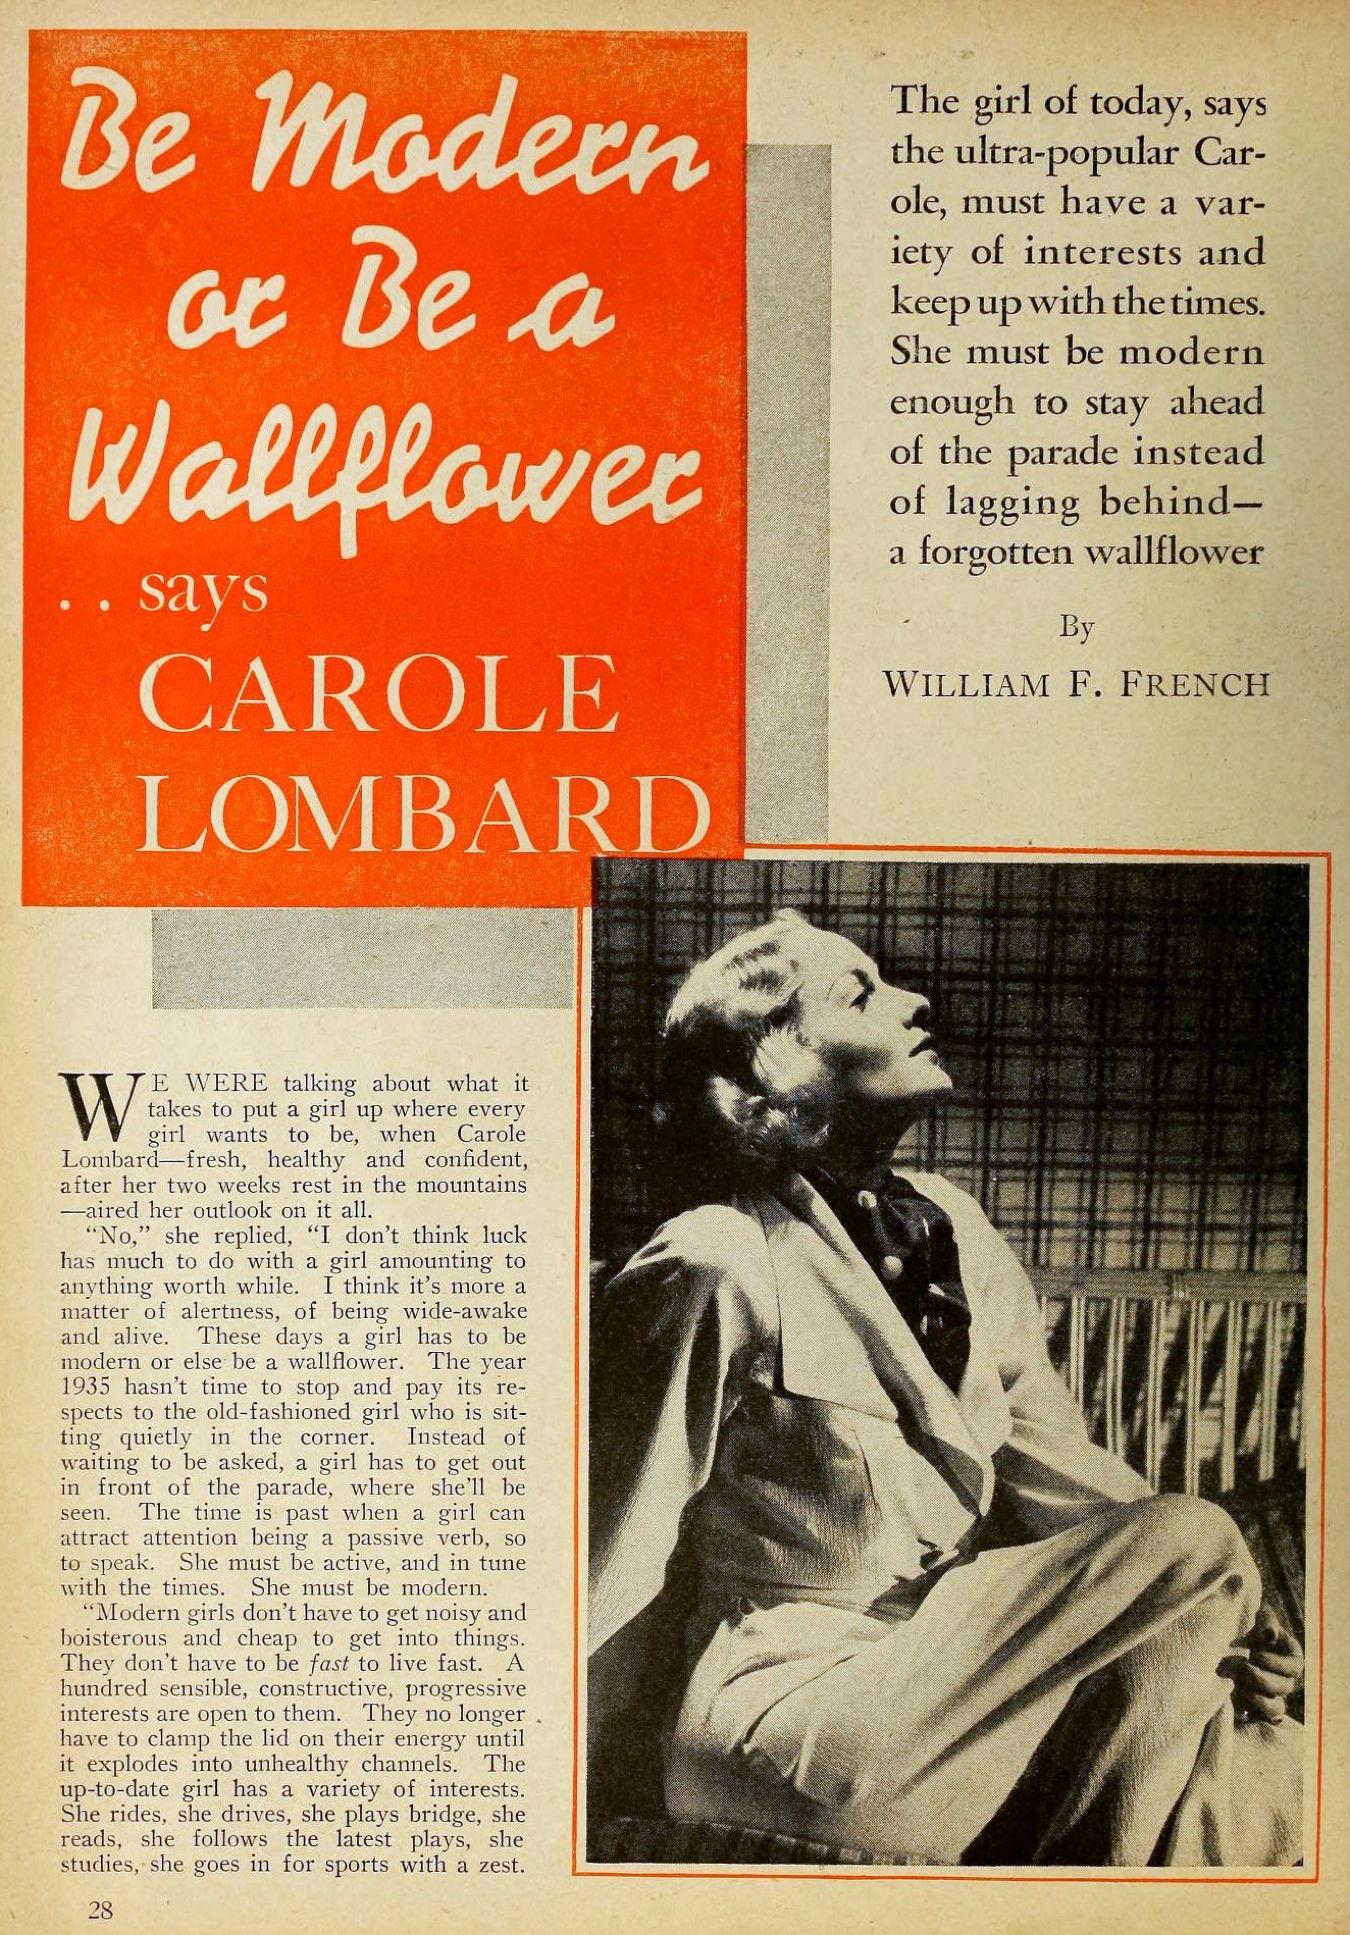 carole lombard motion picture aug 1935 be modern 00a